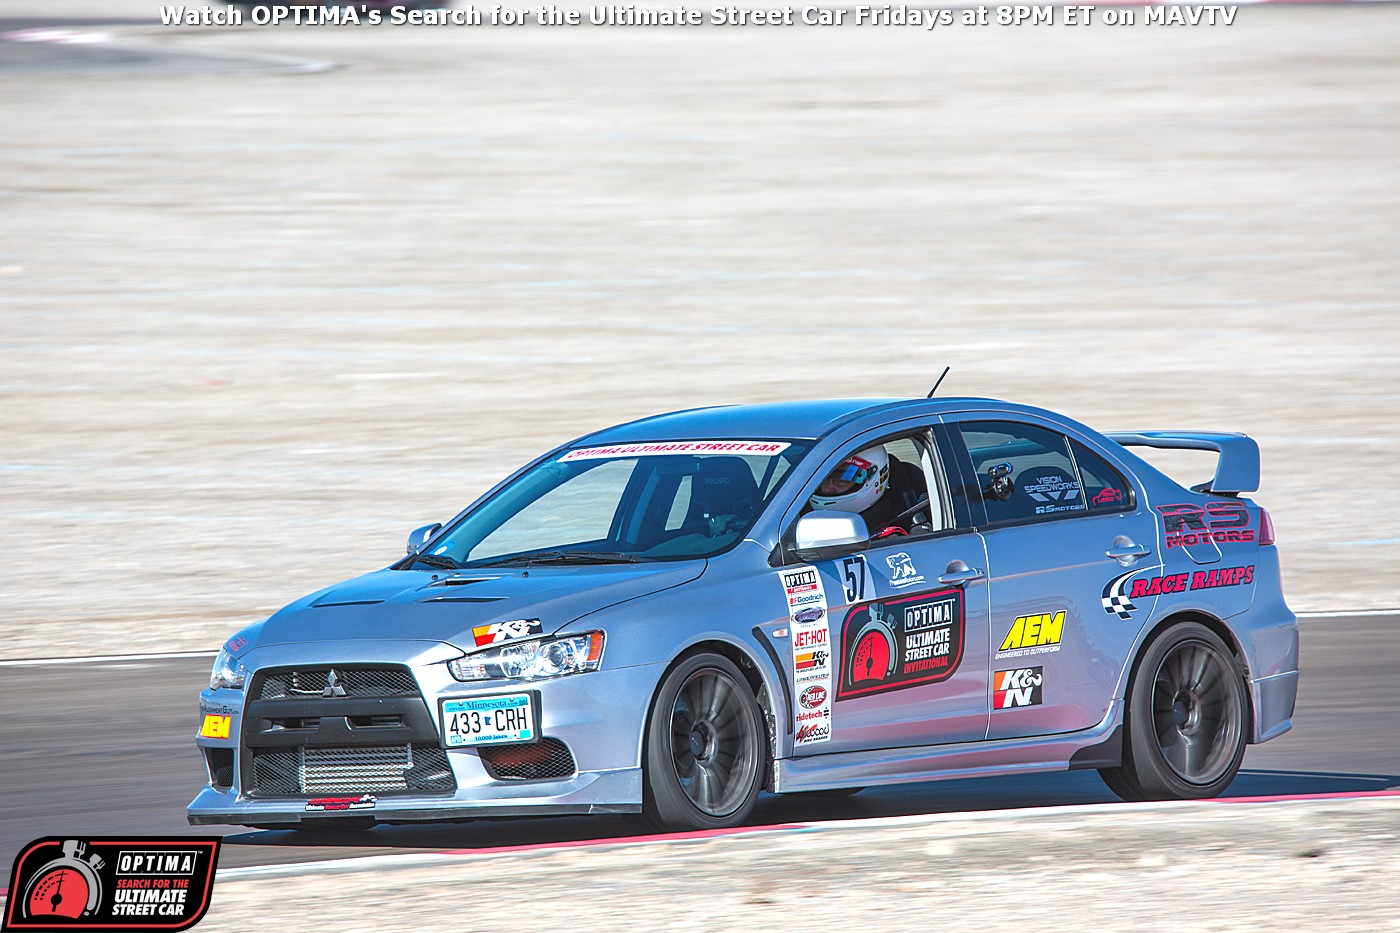 Shawn-Carroll-2008-Mitsubishi-Evolution-BFGoodrich-Hot-Lap-Challenge-2014-OPTIMA-Ultimate-Street-Car-Invitational_215.jpg